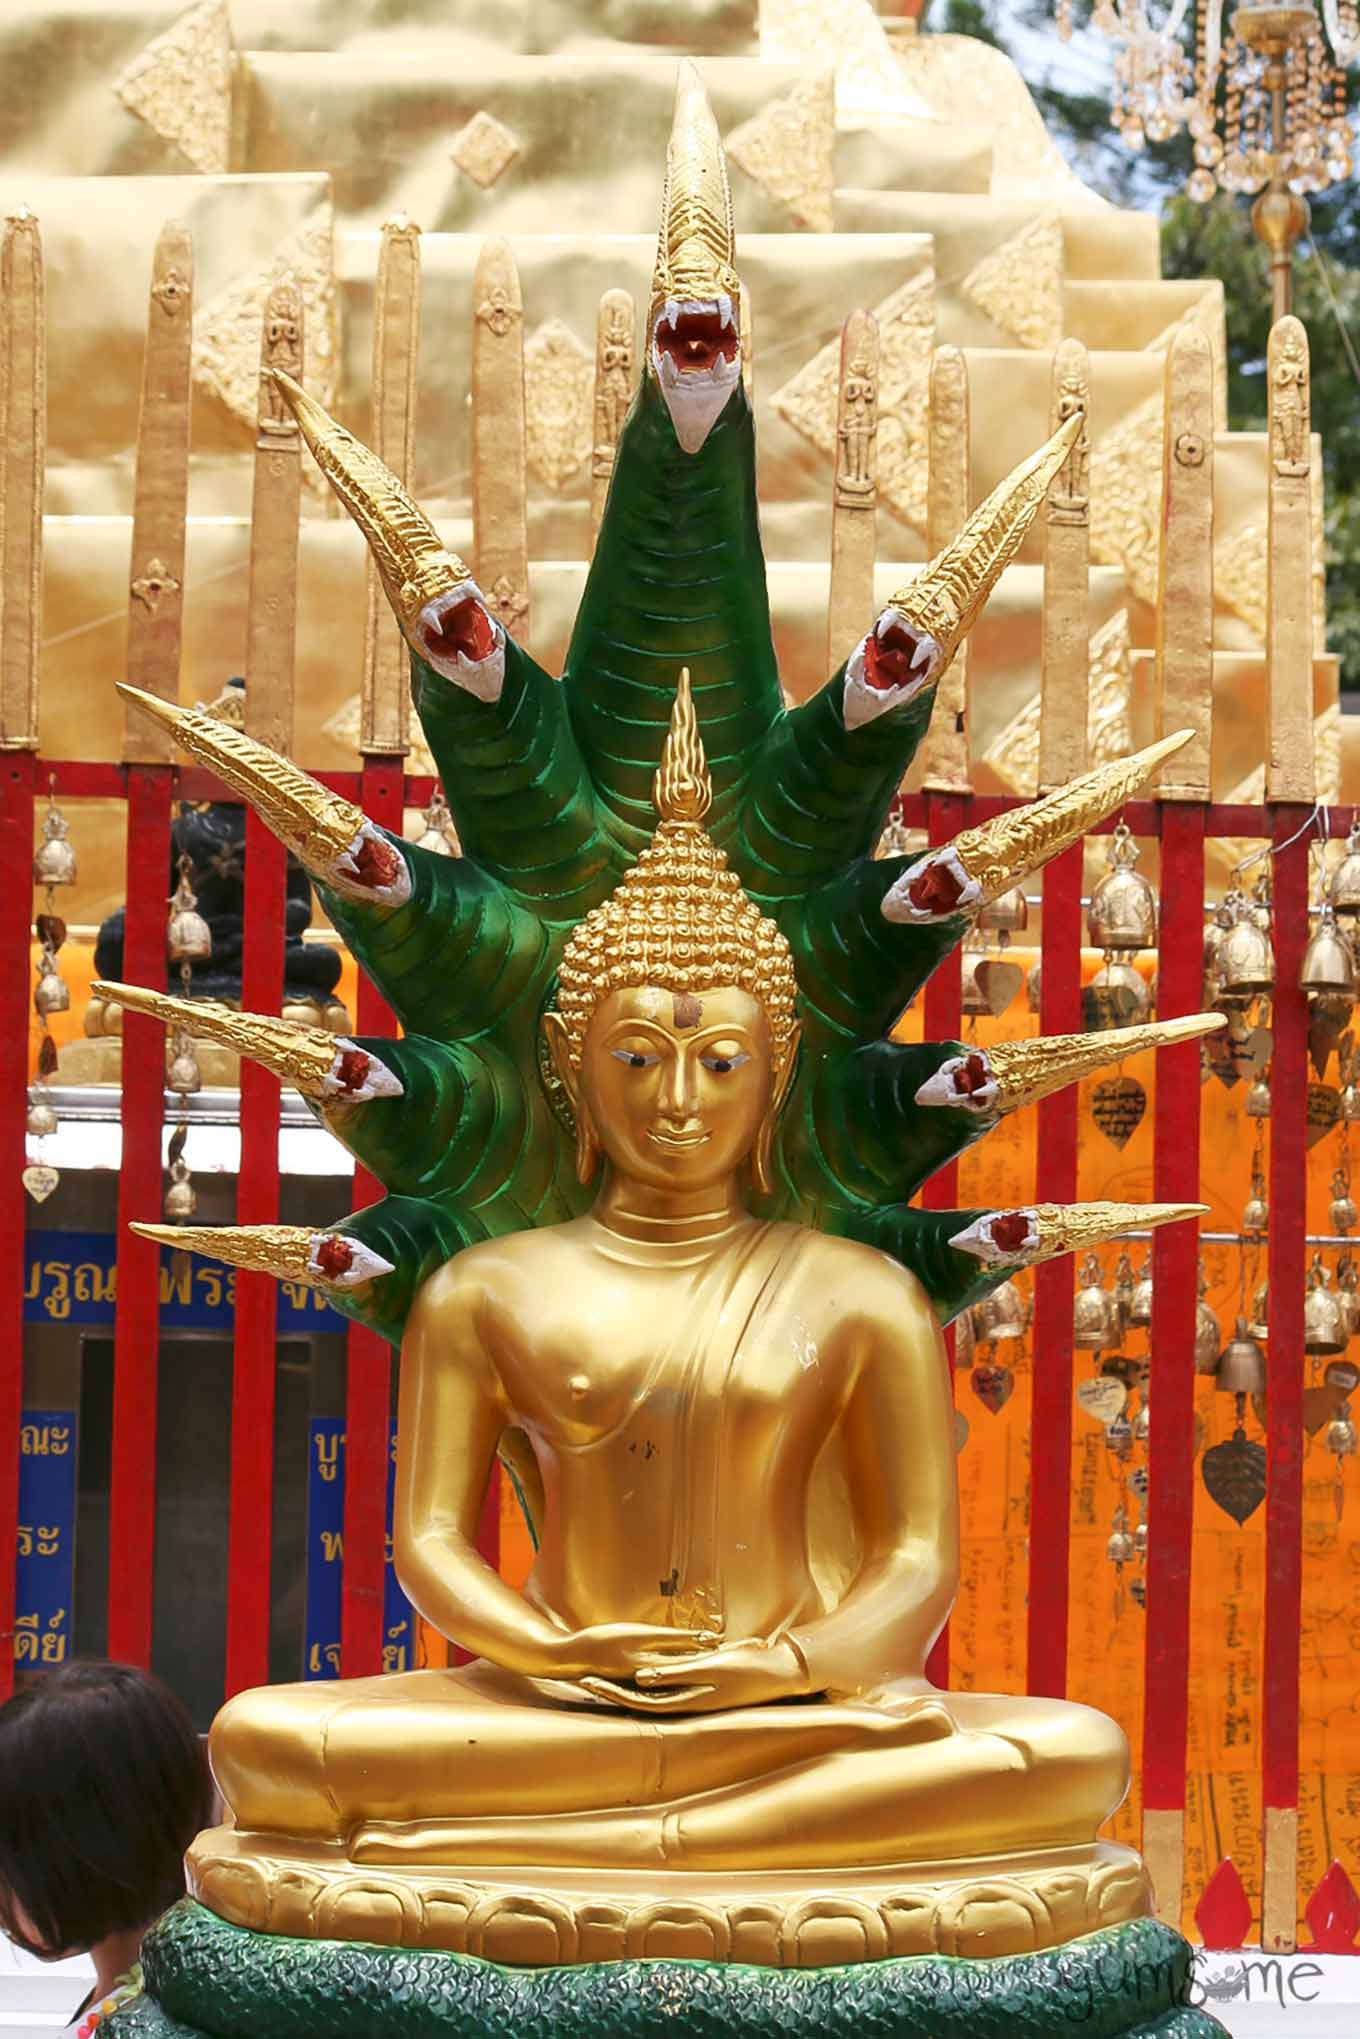 Golden Muchalinda Buddha statue, with an emerald green serpent canopy.